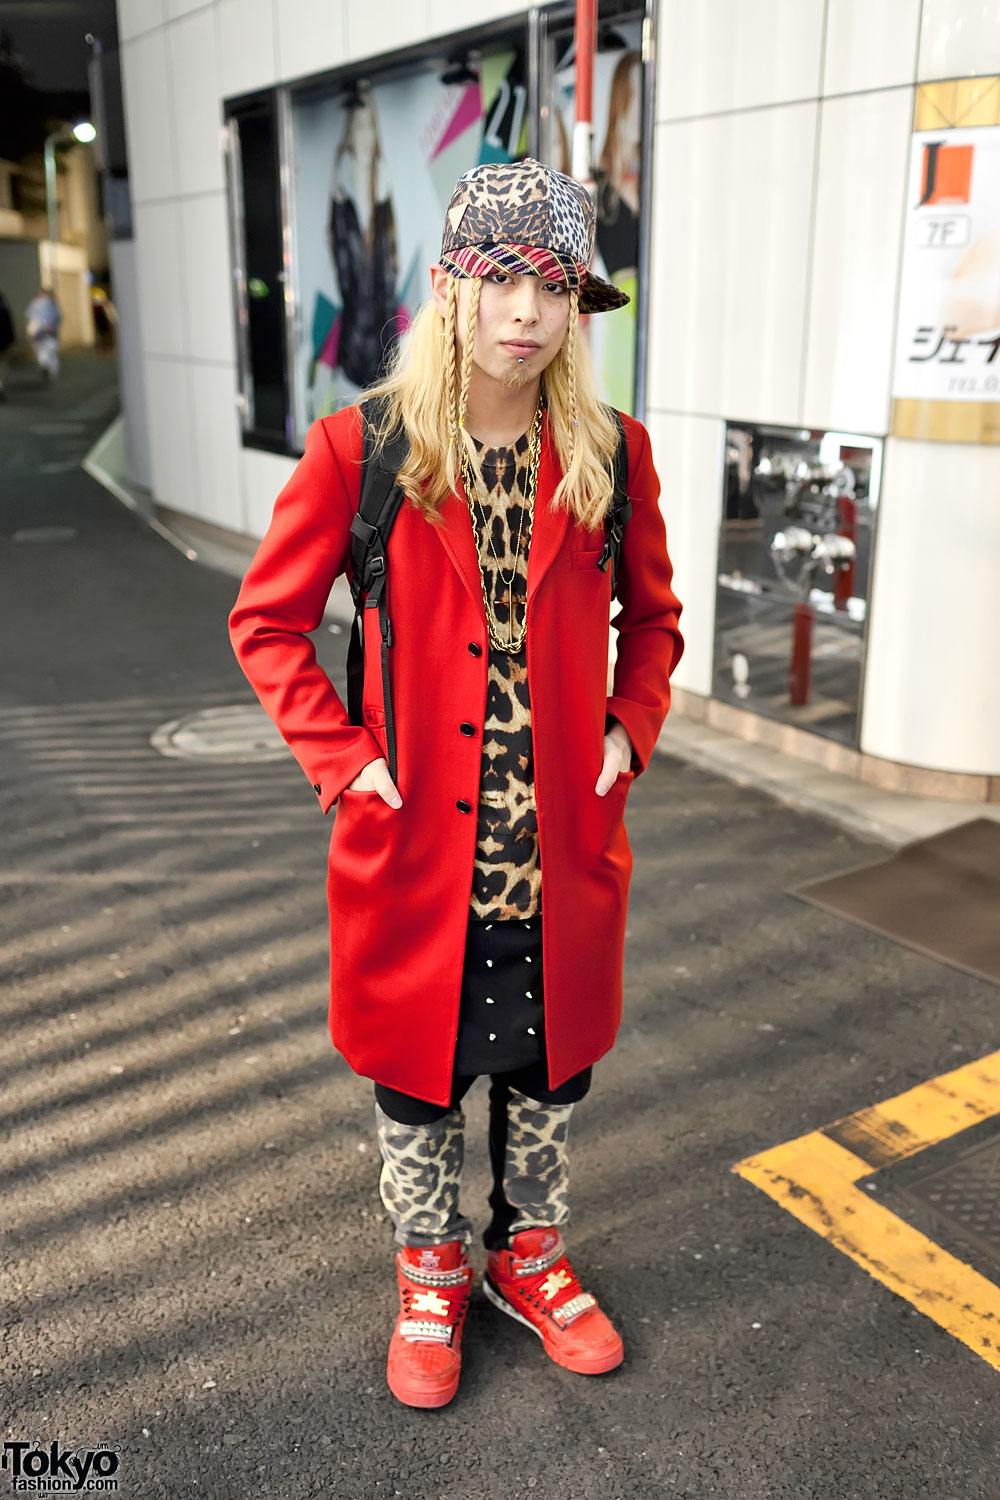 Harajuku Guy in Red Jacket & Leopard Print